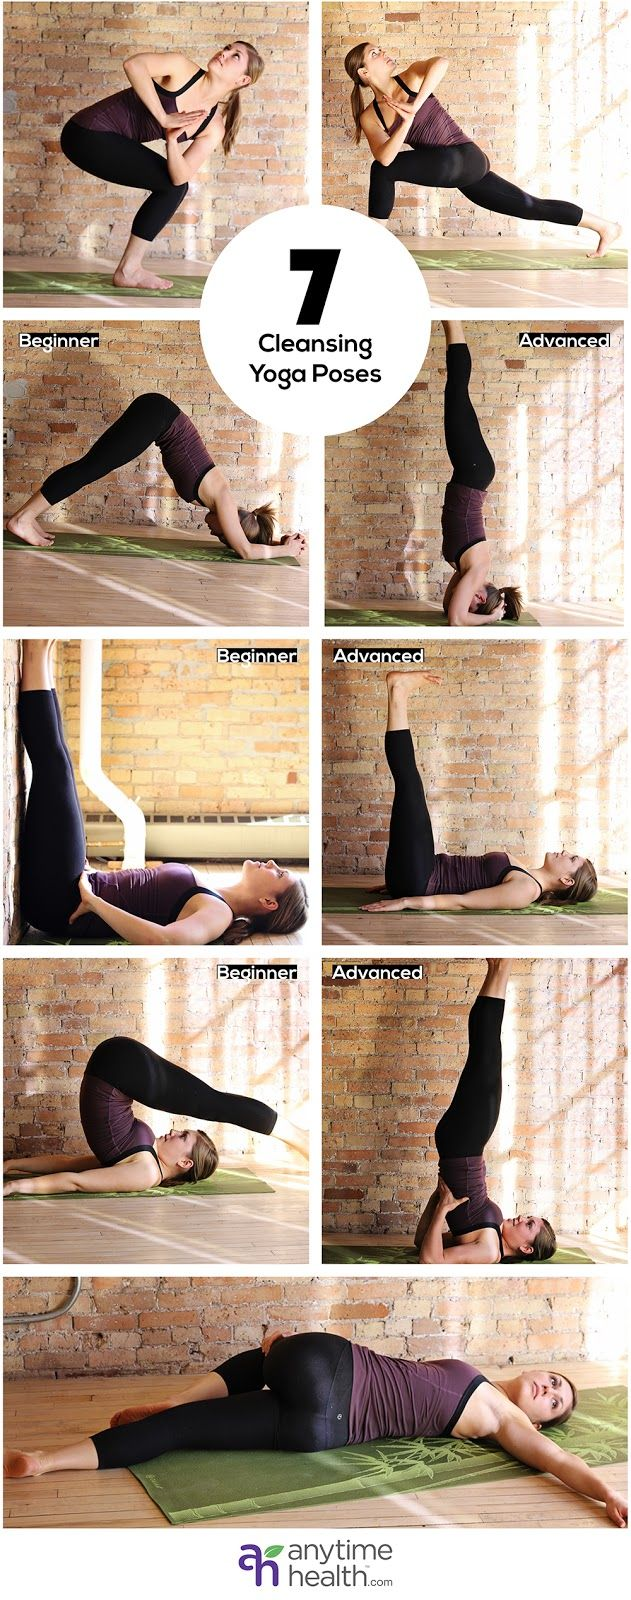 cleansing yoga poses - is it wrong that I would have to go to a class where I didn't know anyone if I try yoga?